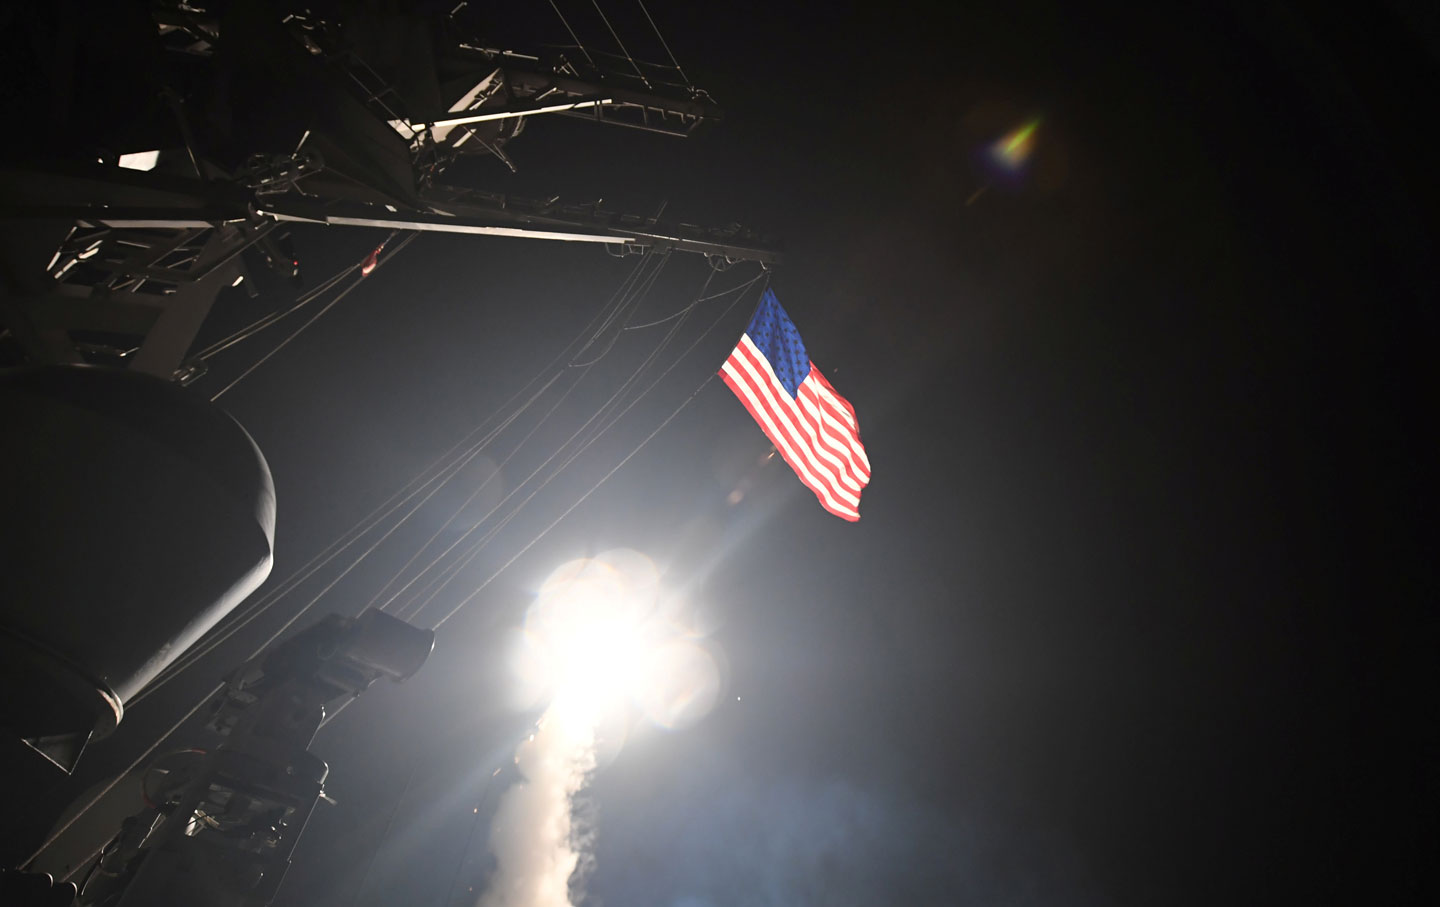 What Is It With US Presidents and Tomahawk Cruise-Missile Strikes